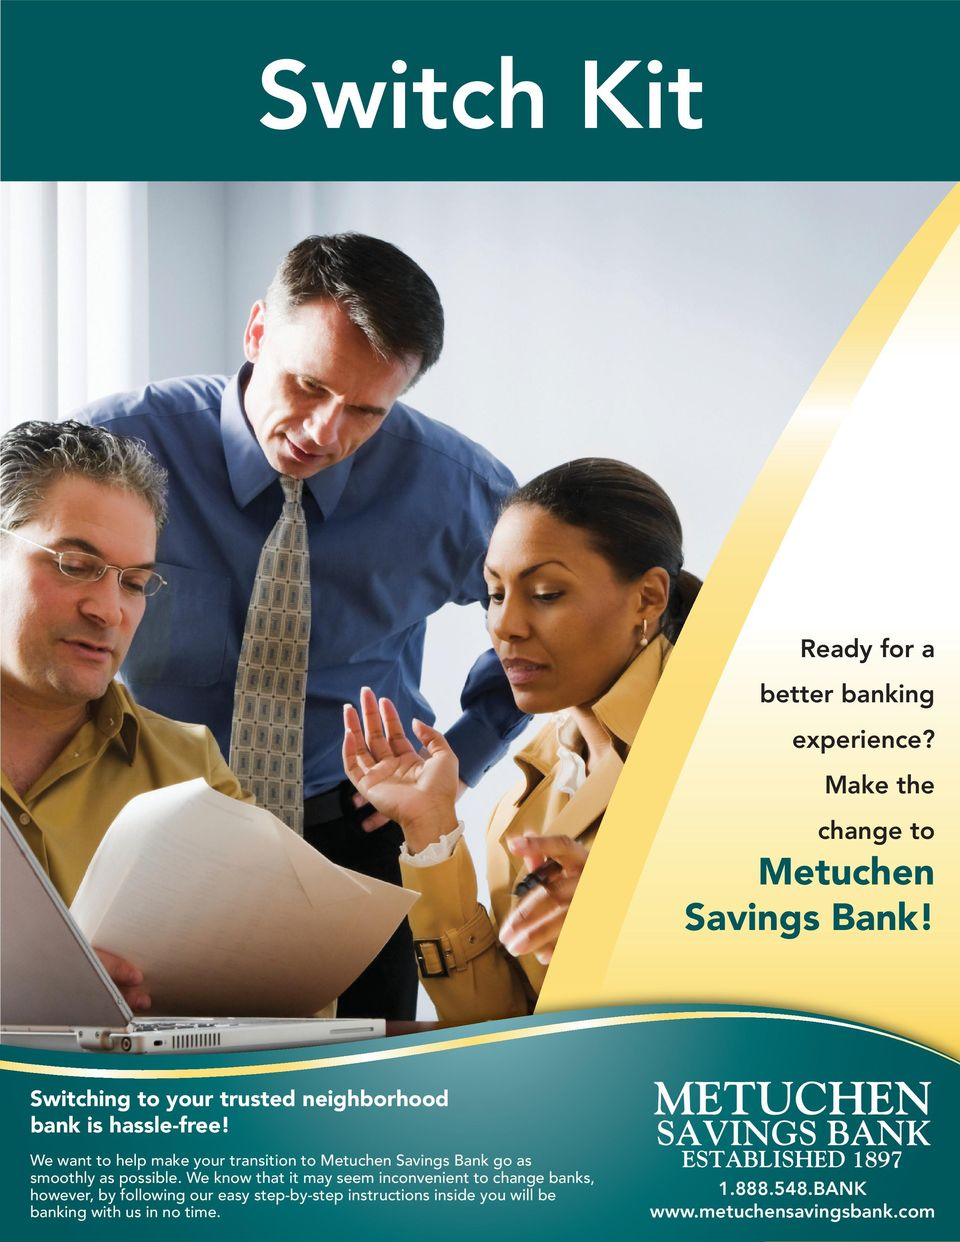 We want to help make your transition to Metuchen Savings Bank go as smoothly as possible.